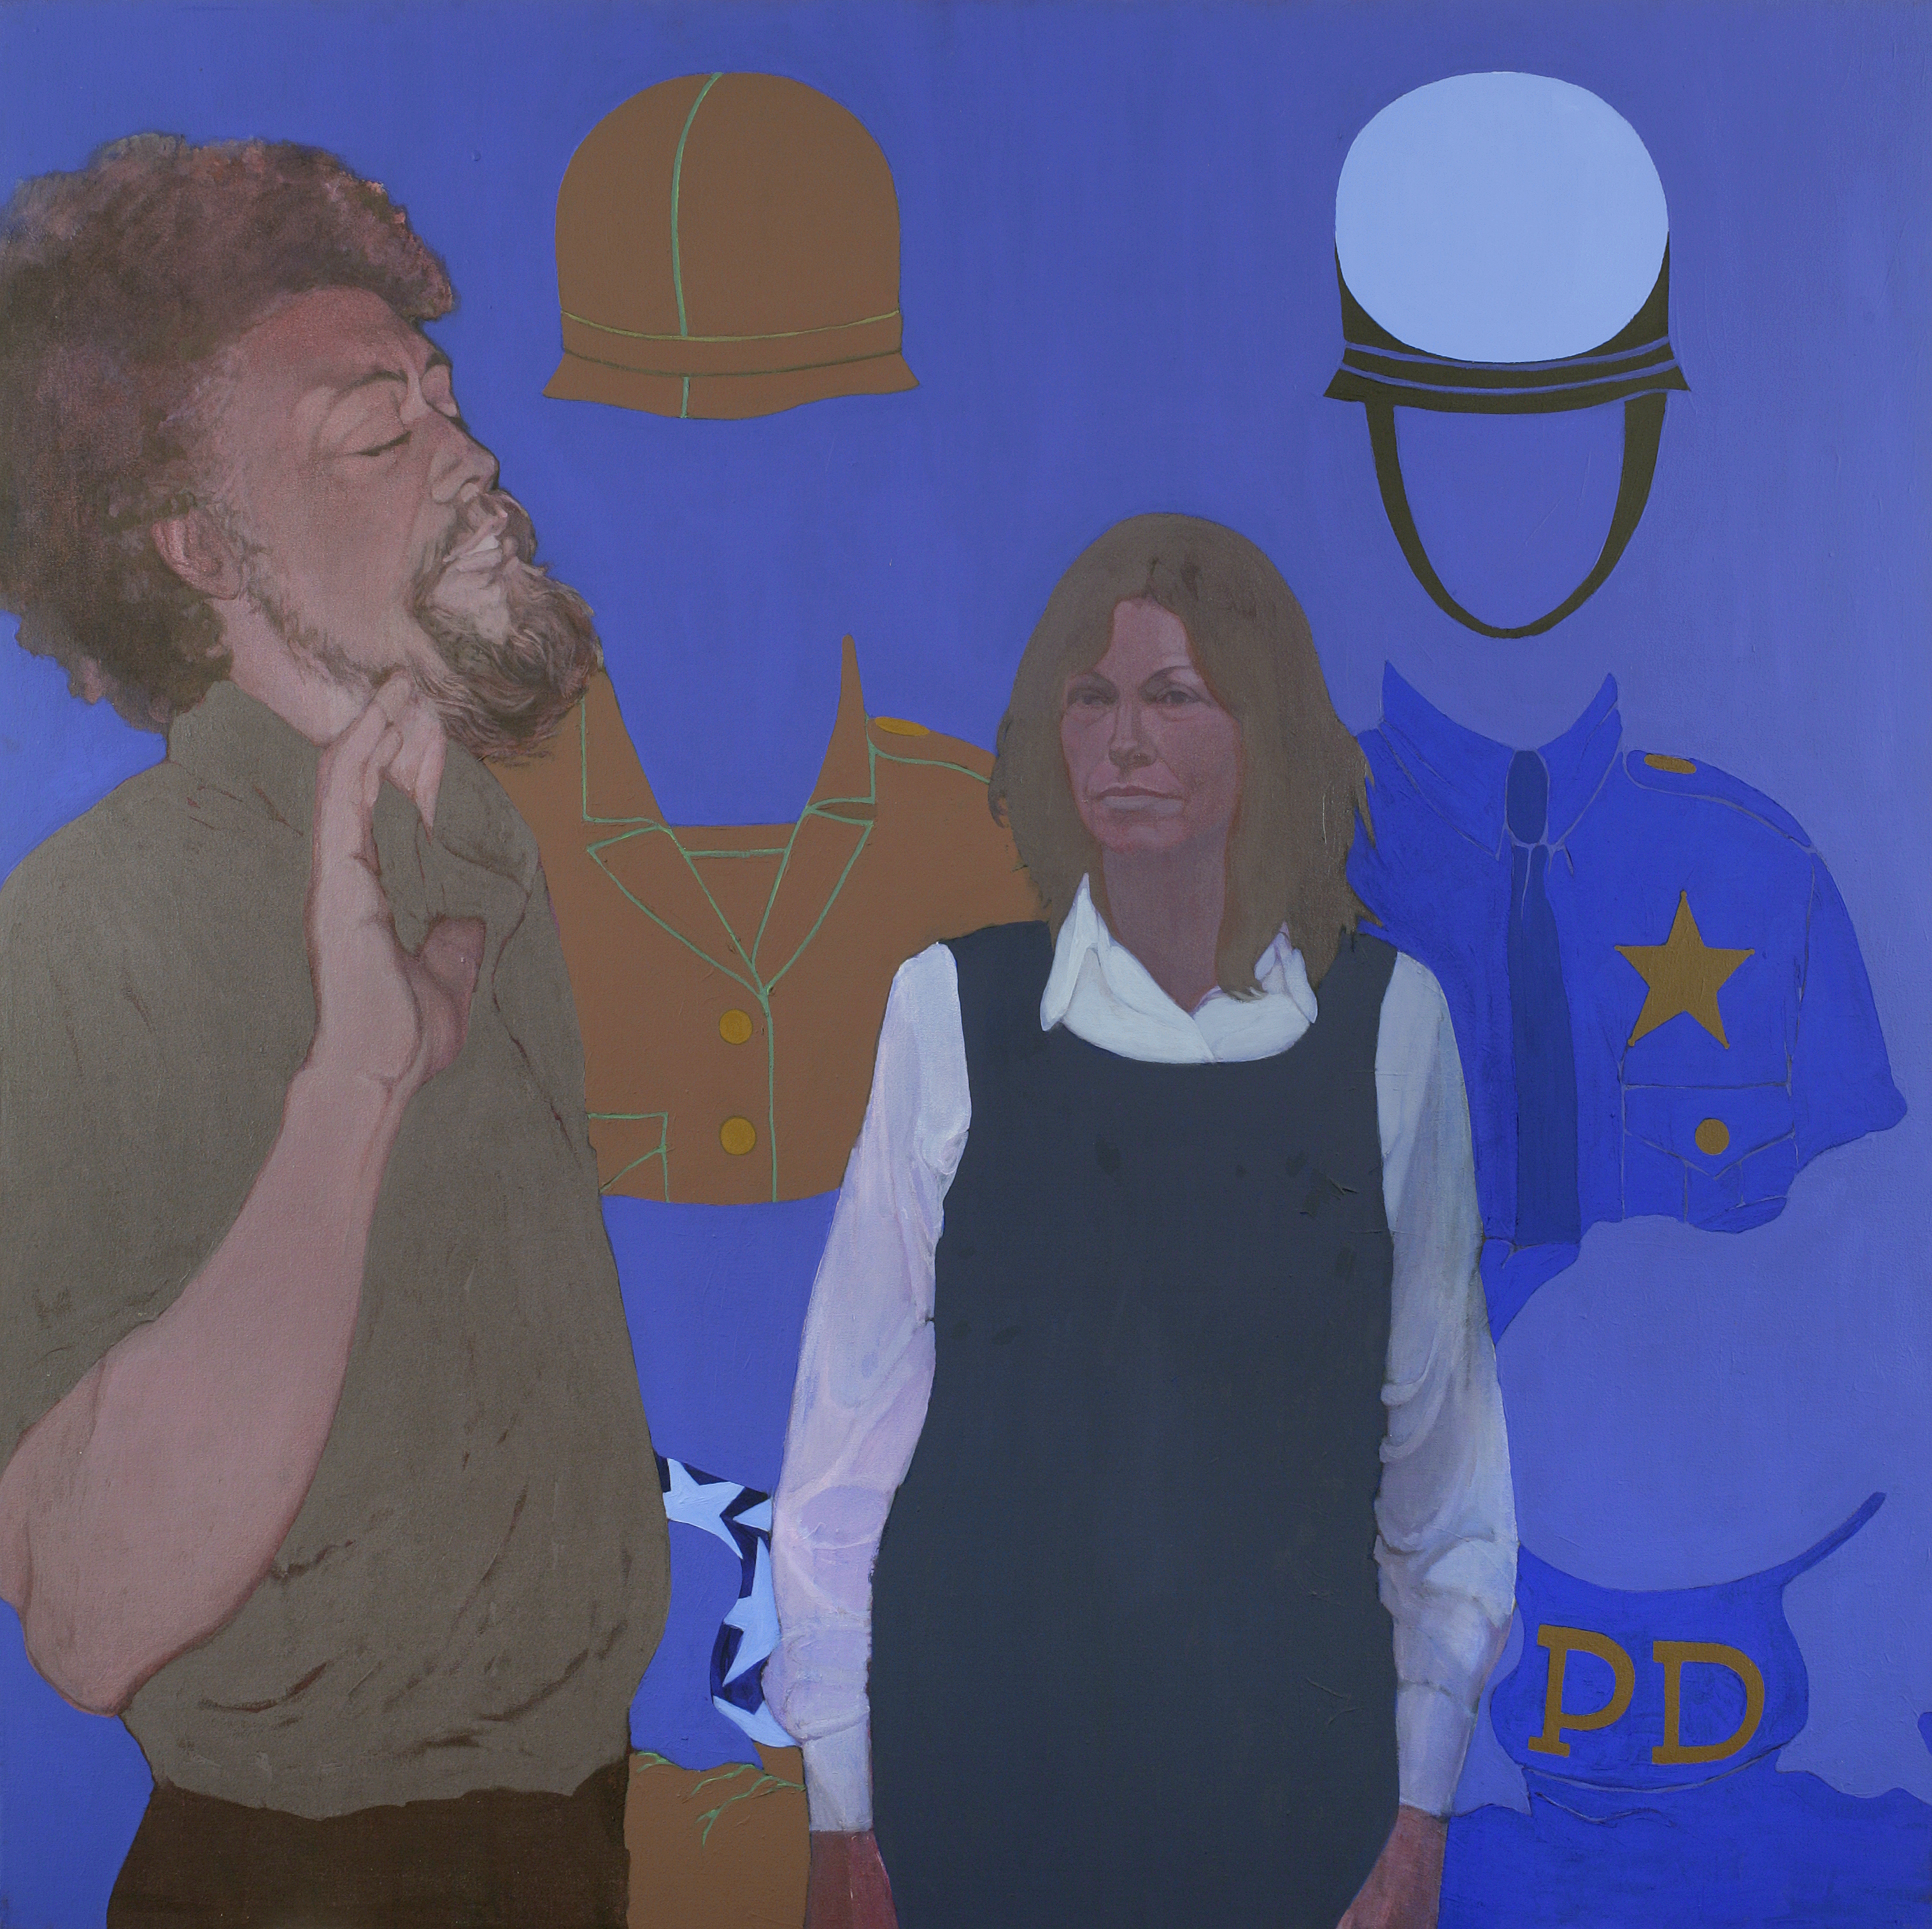 "May Stevens, ""Benny Andrews, the Artist, and Big Daddy Paper Doll,"" 1976, Acrylic on canvas, 60 1/4 x 60 1/4 in., National Academy of Design, New York"